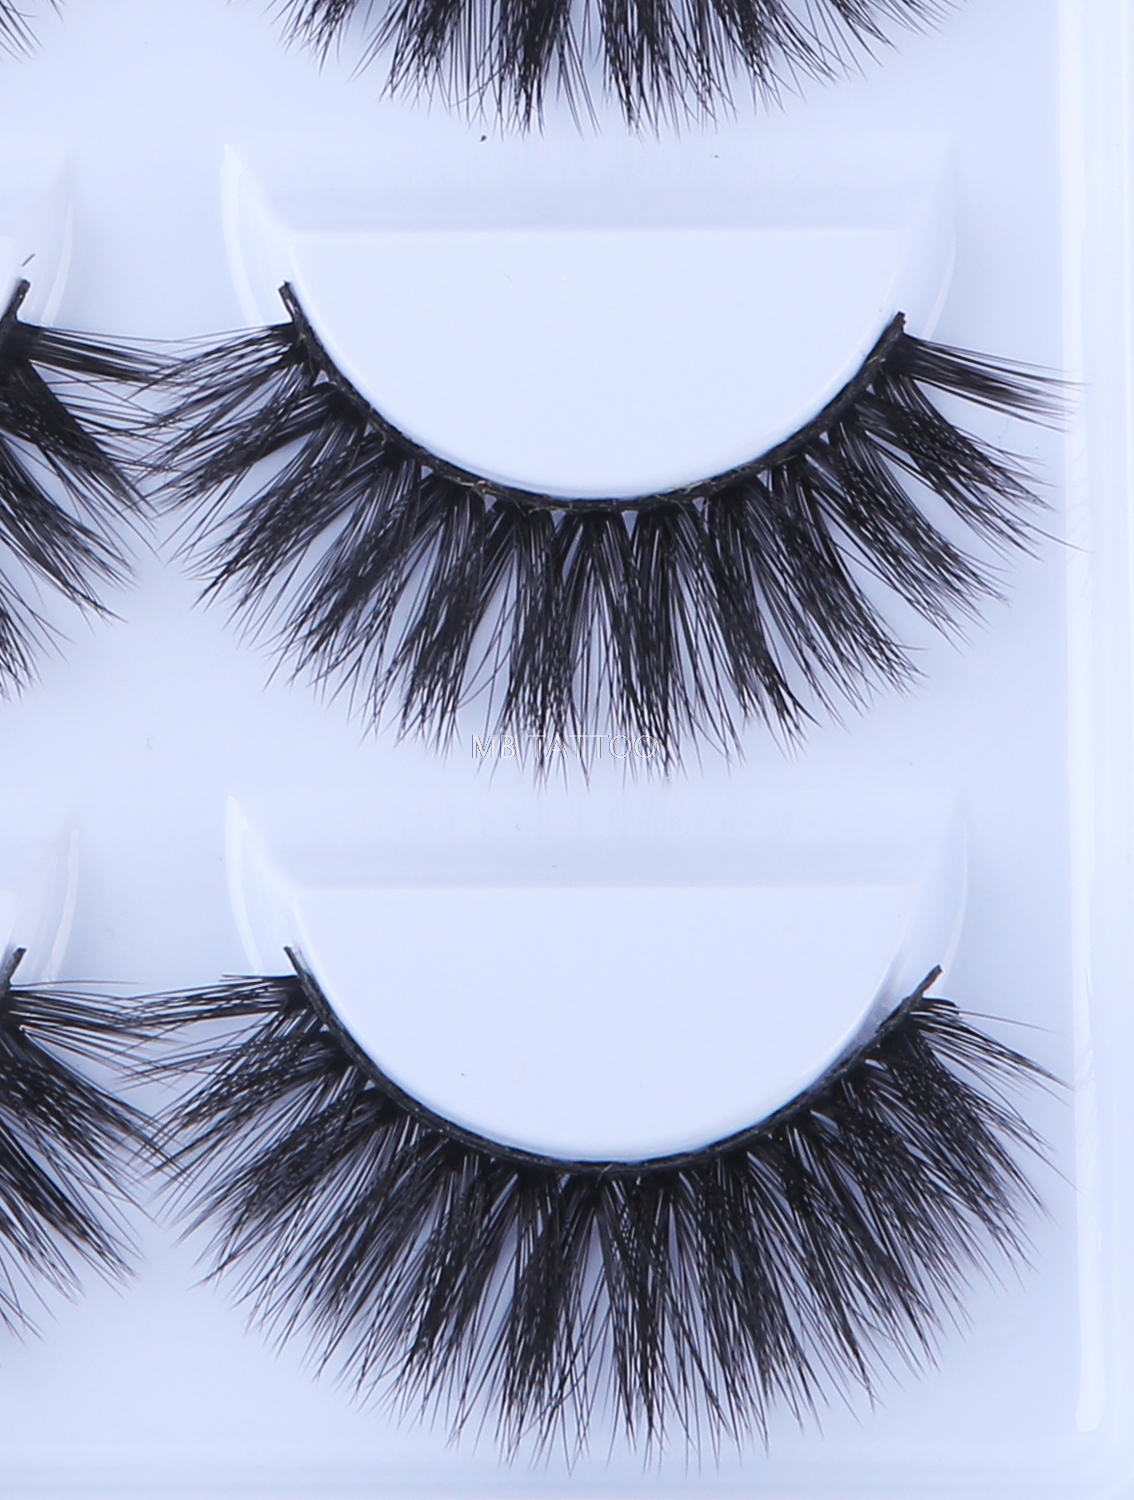 HTB1mIIQQ9zqK1RjSZFHq6z3CpXae New 3D 5 Pairs Mink Eyelashes extension make up natural Long false eyelashes fake eye Lashes mink Makeup wholesale Lashes